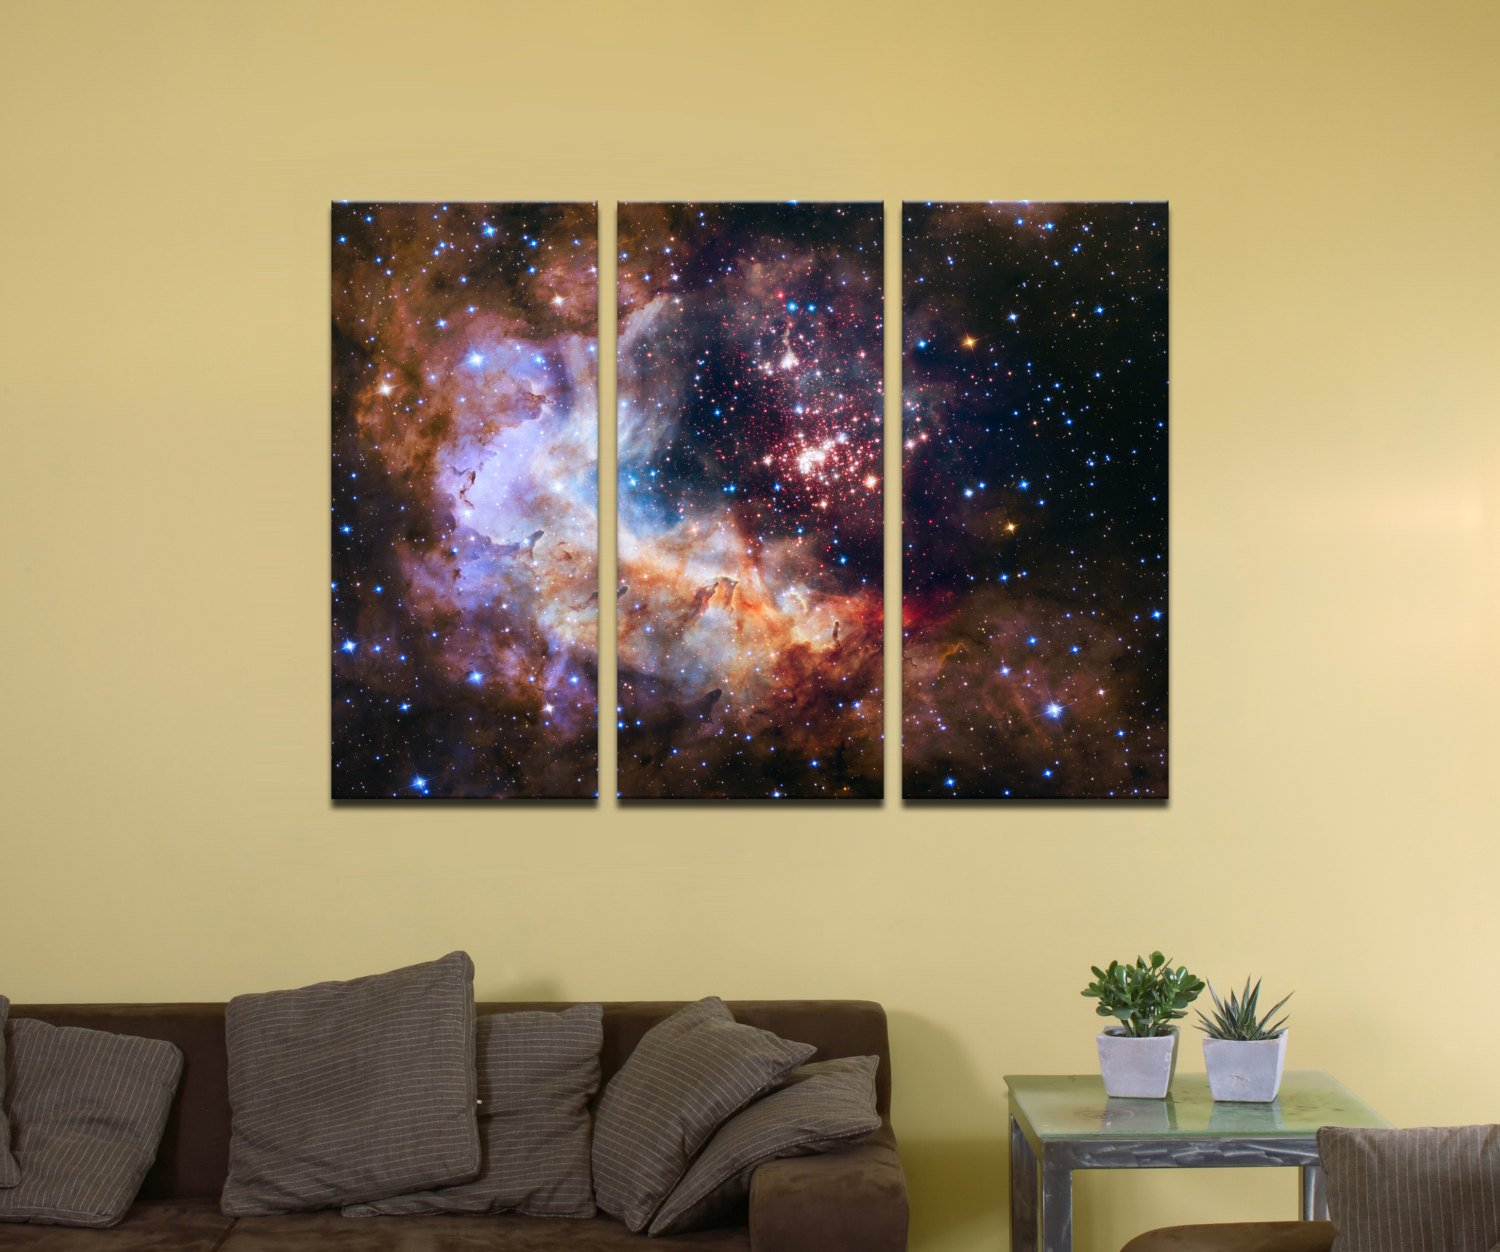 "Celestial Fireworks, Hubble 25th Anniversary HD Space Photo - 48"" x 32"", 3-Piece Split Canvas Wall Mural"